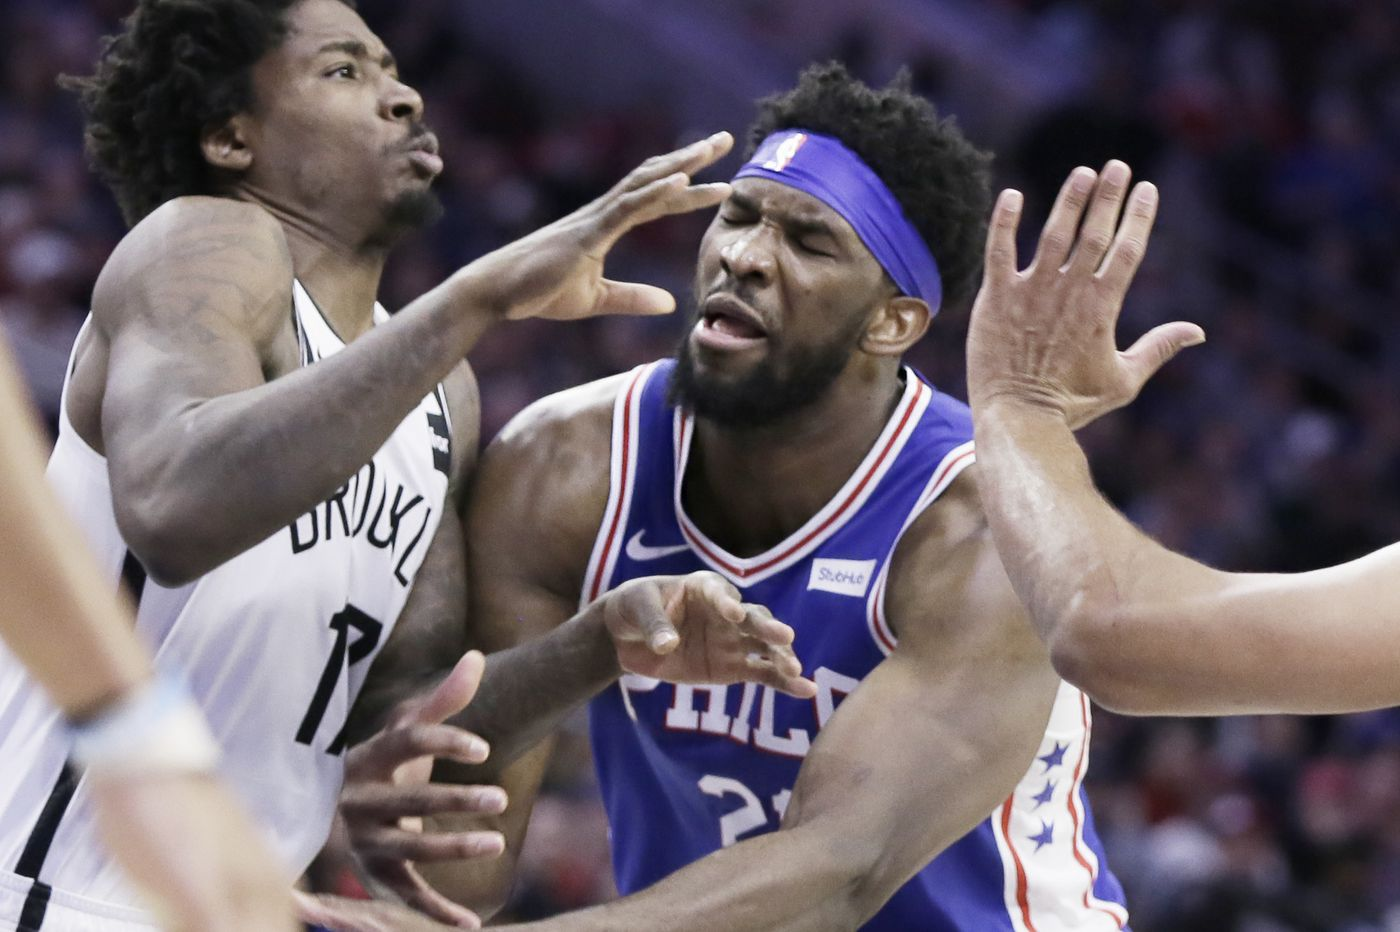 In Butler's return, 76ers top Timberwolves 118-109